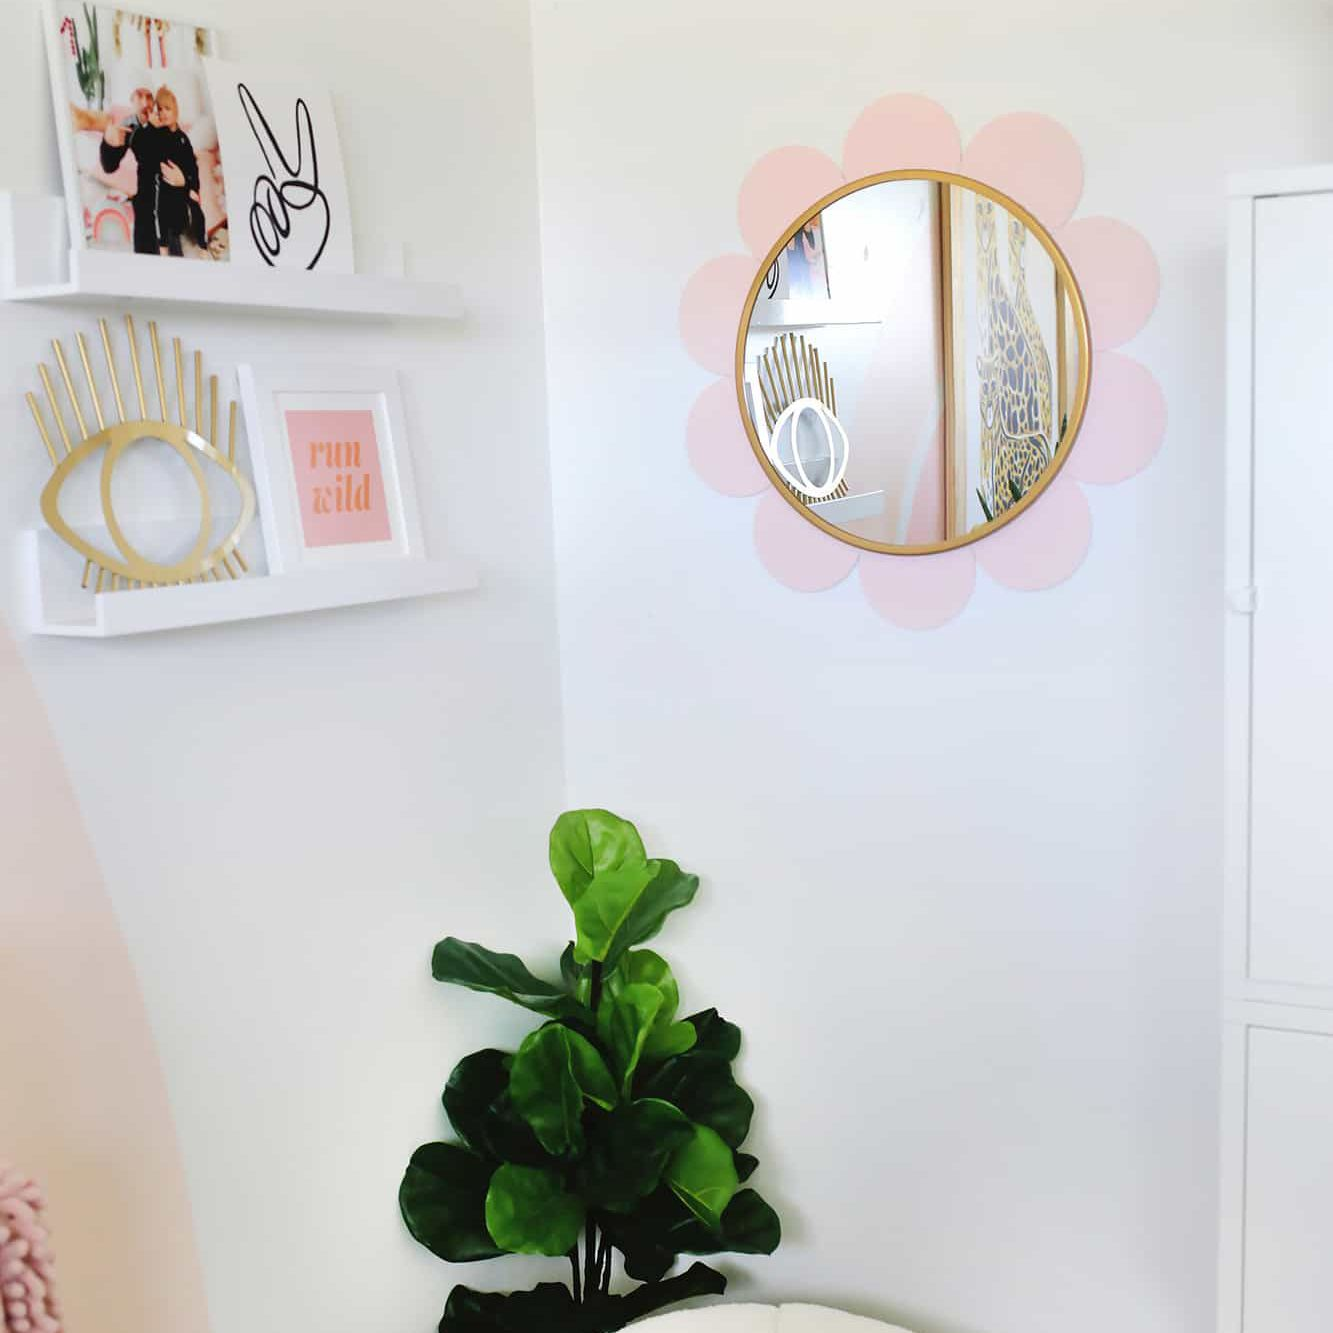 A DIY Mirror in the shape of a flower